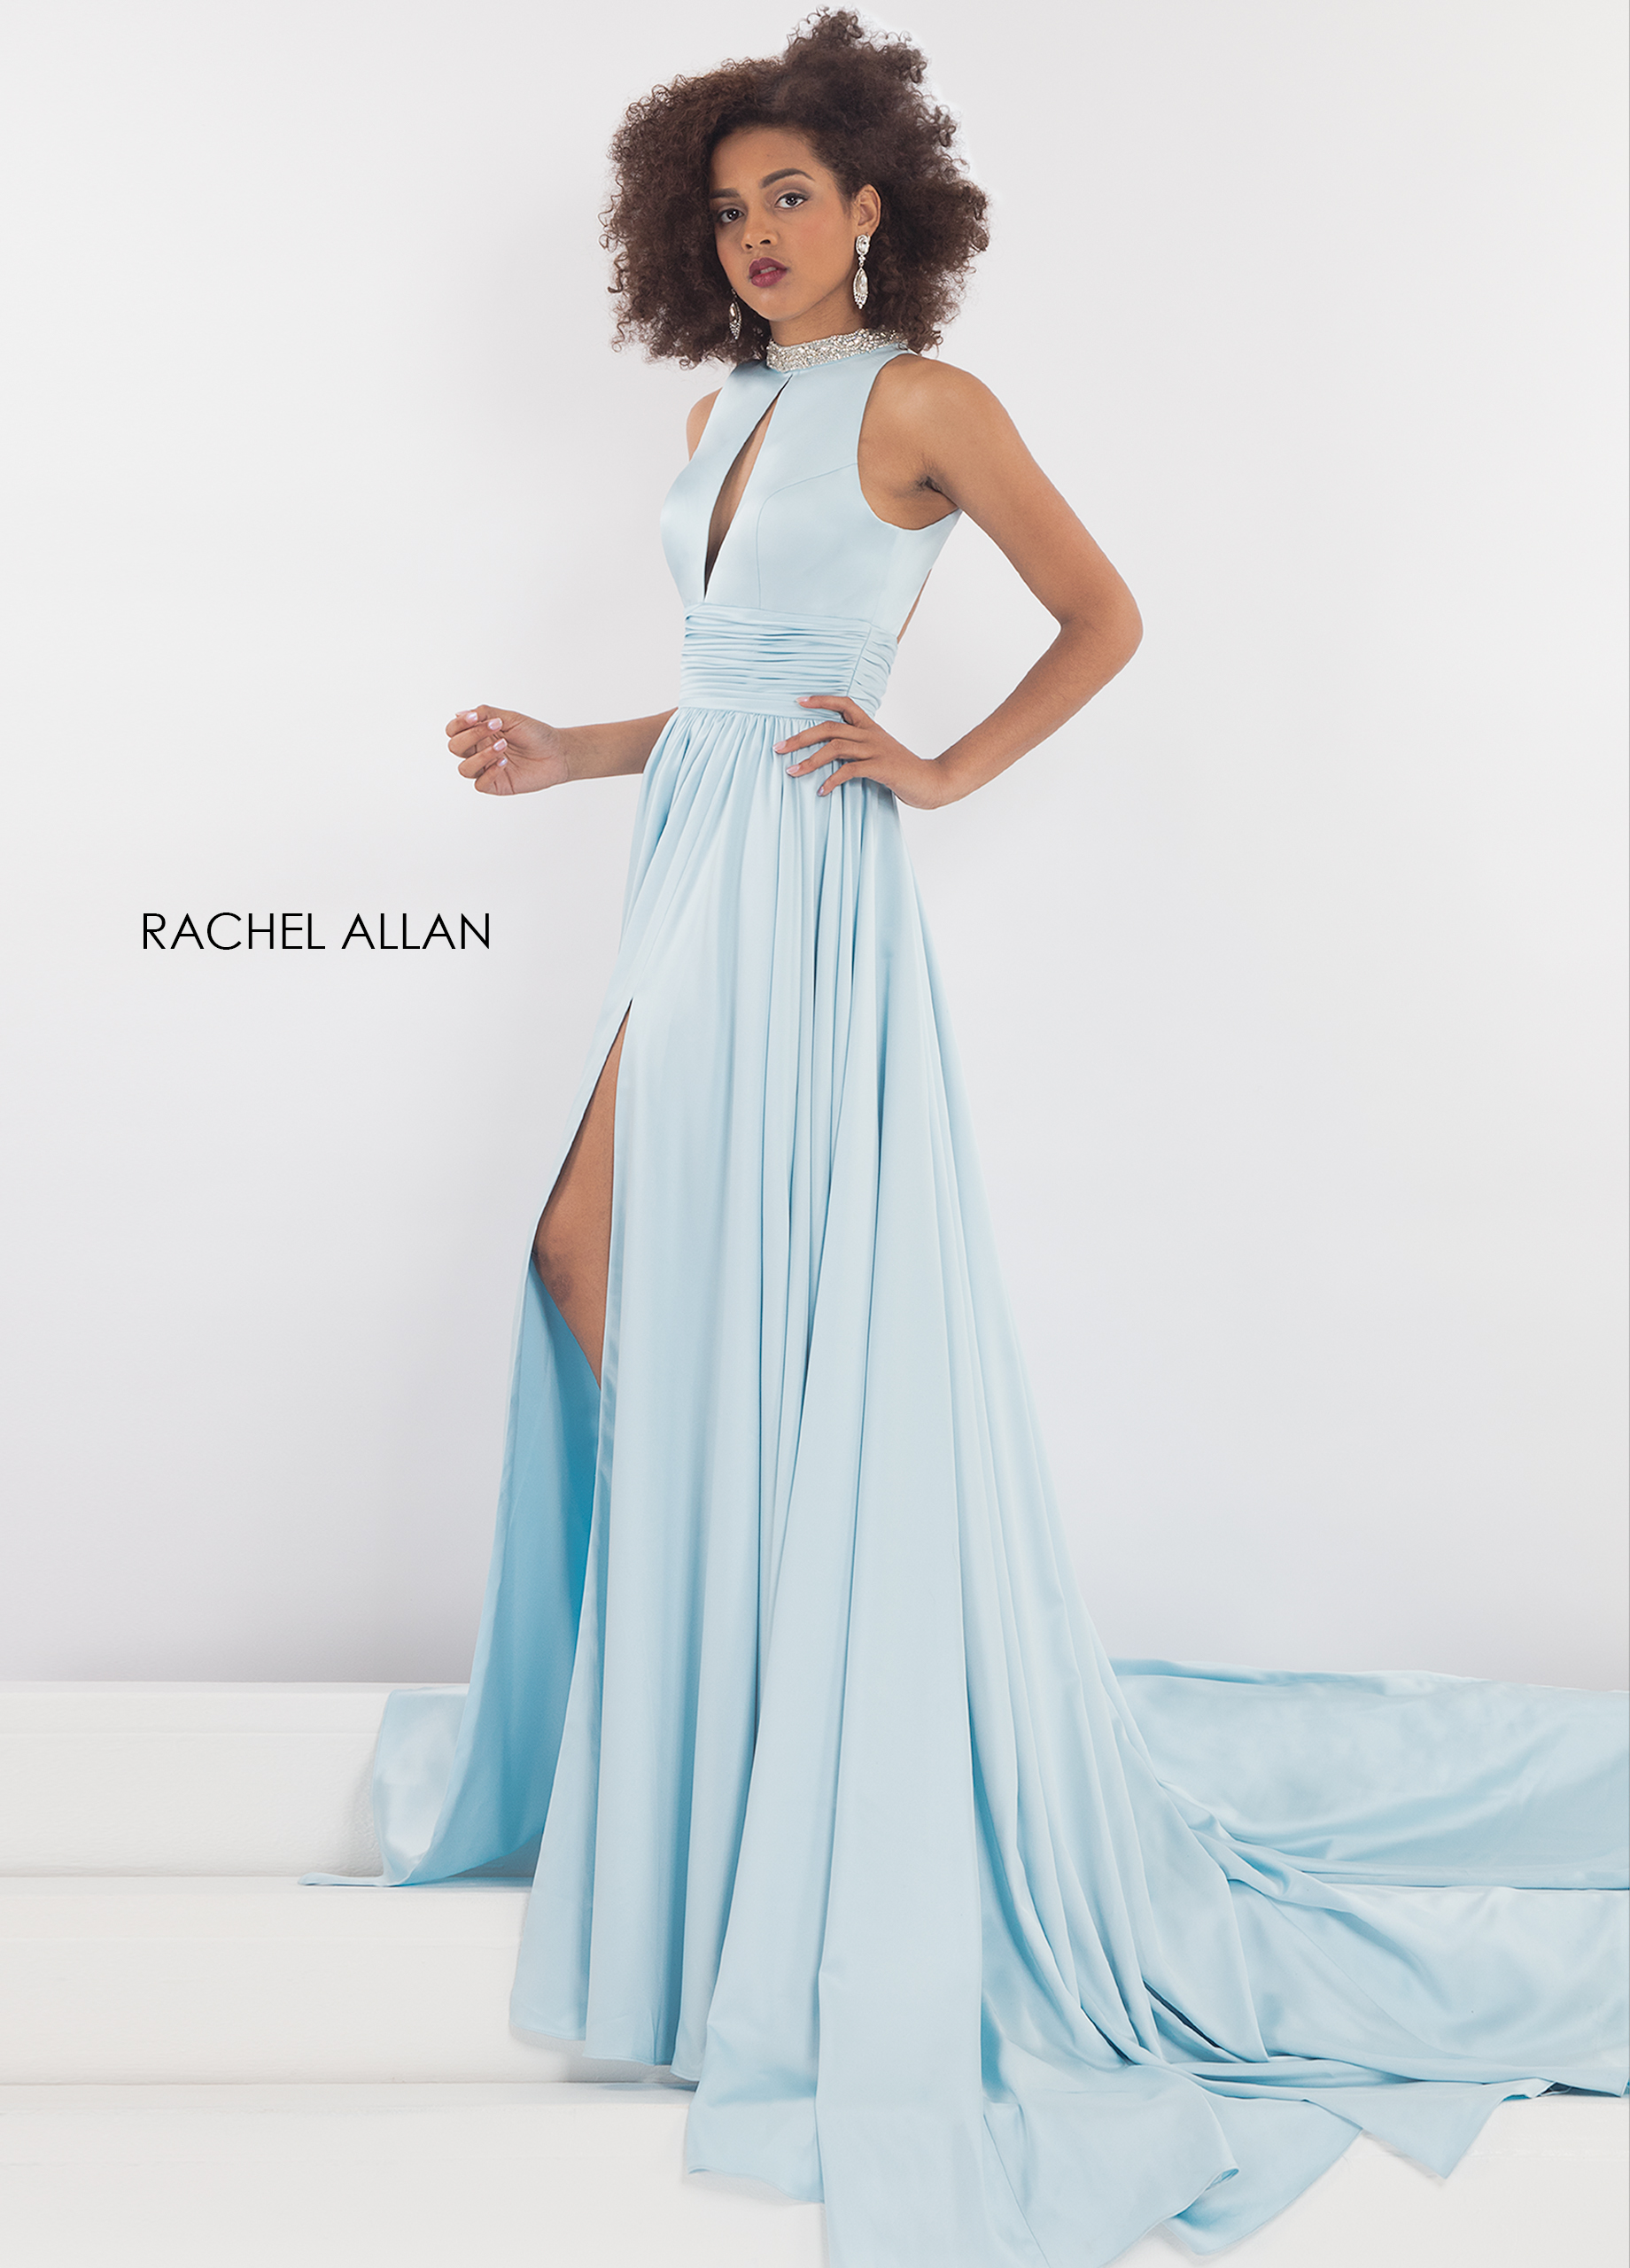 High Neckline Fit & Flare Pageant Dresses in Aqua Color